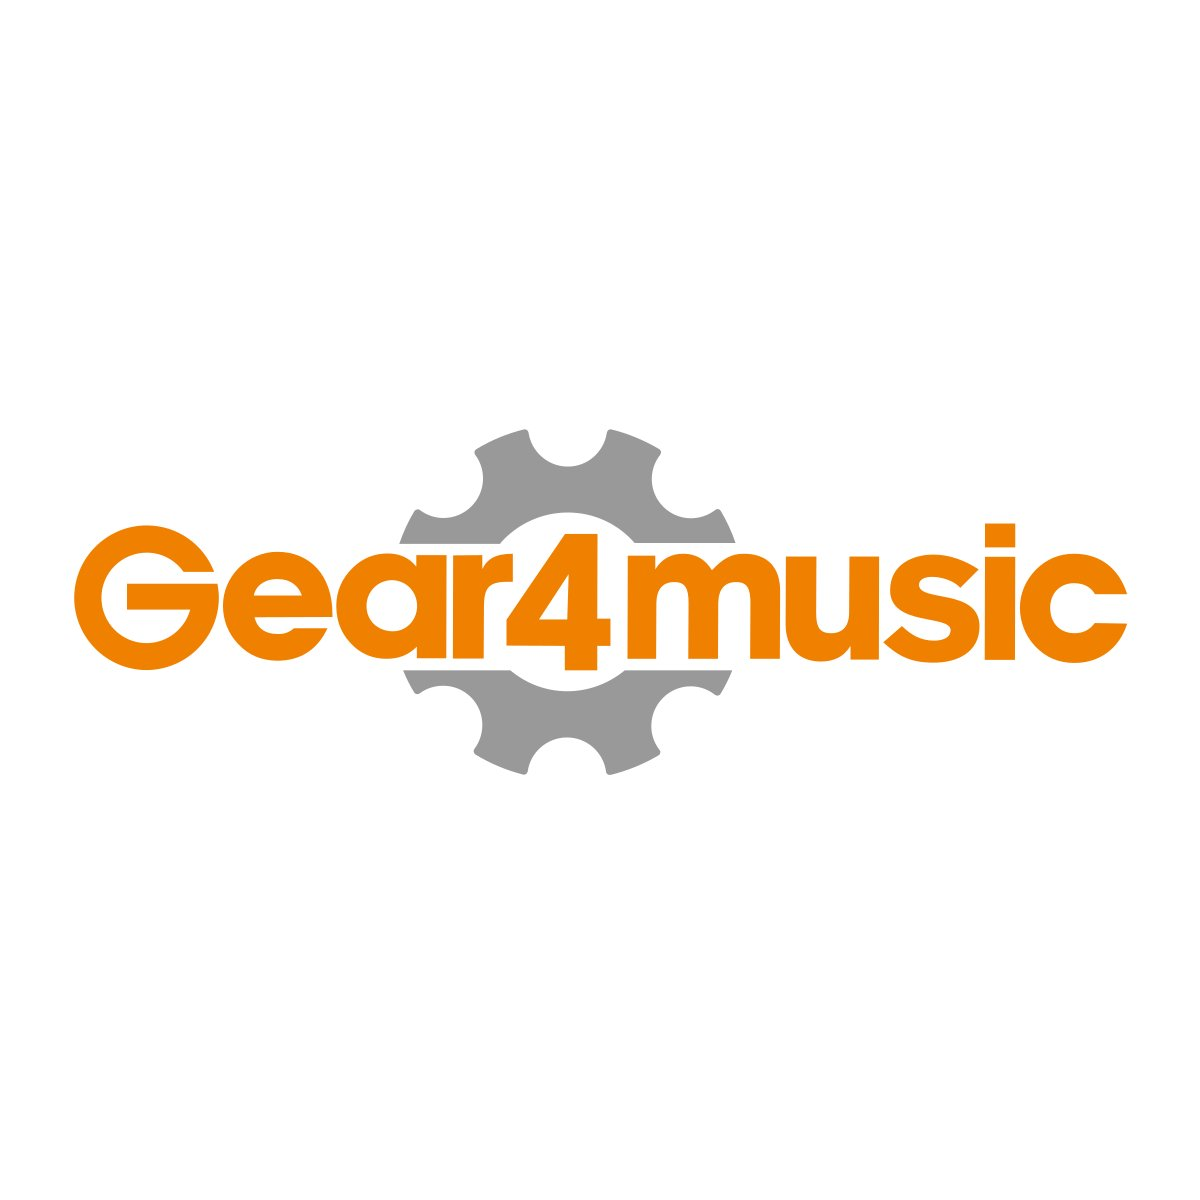 Miami Bass gitarr av Gear4music, svart